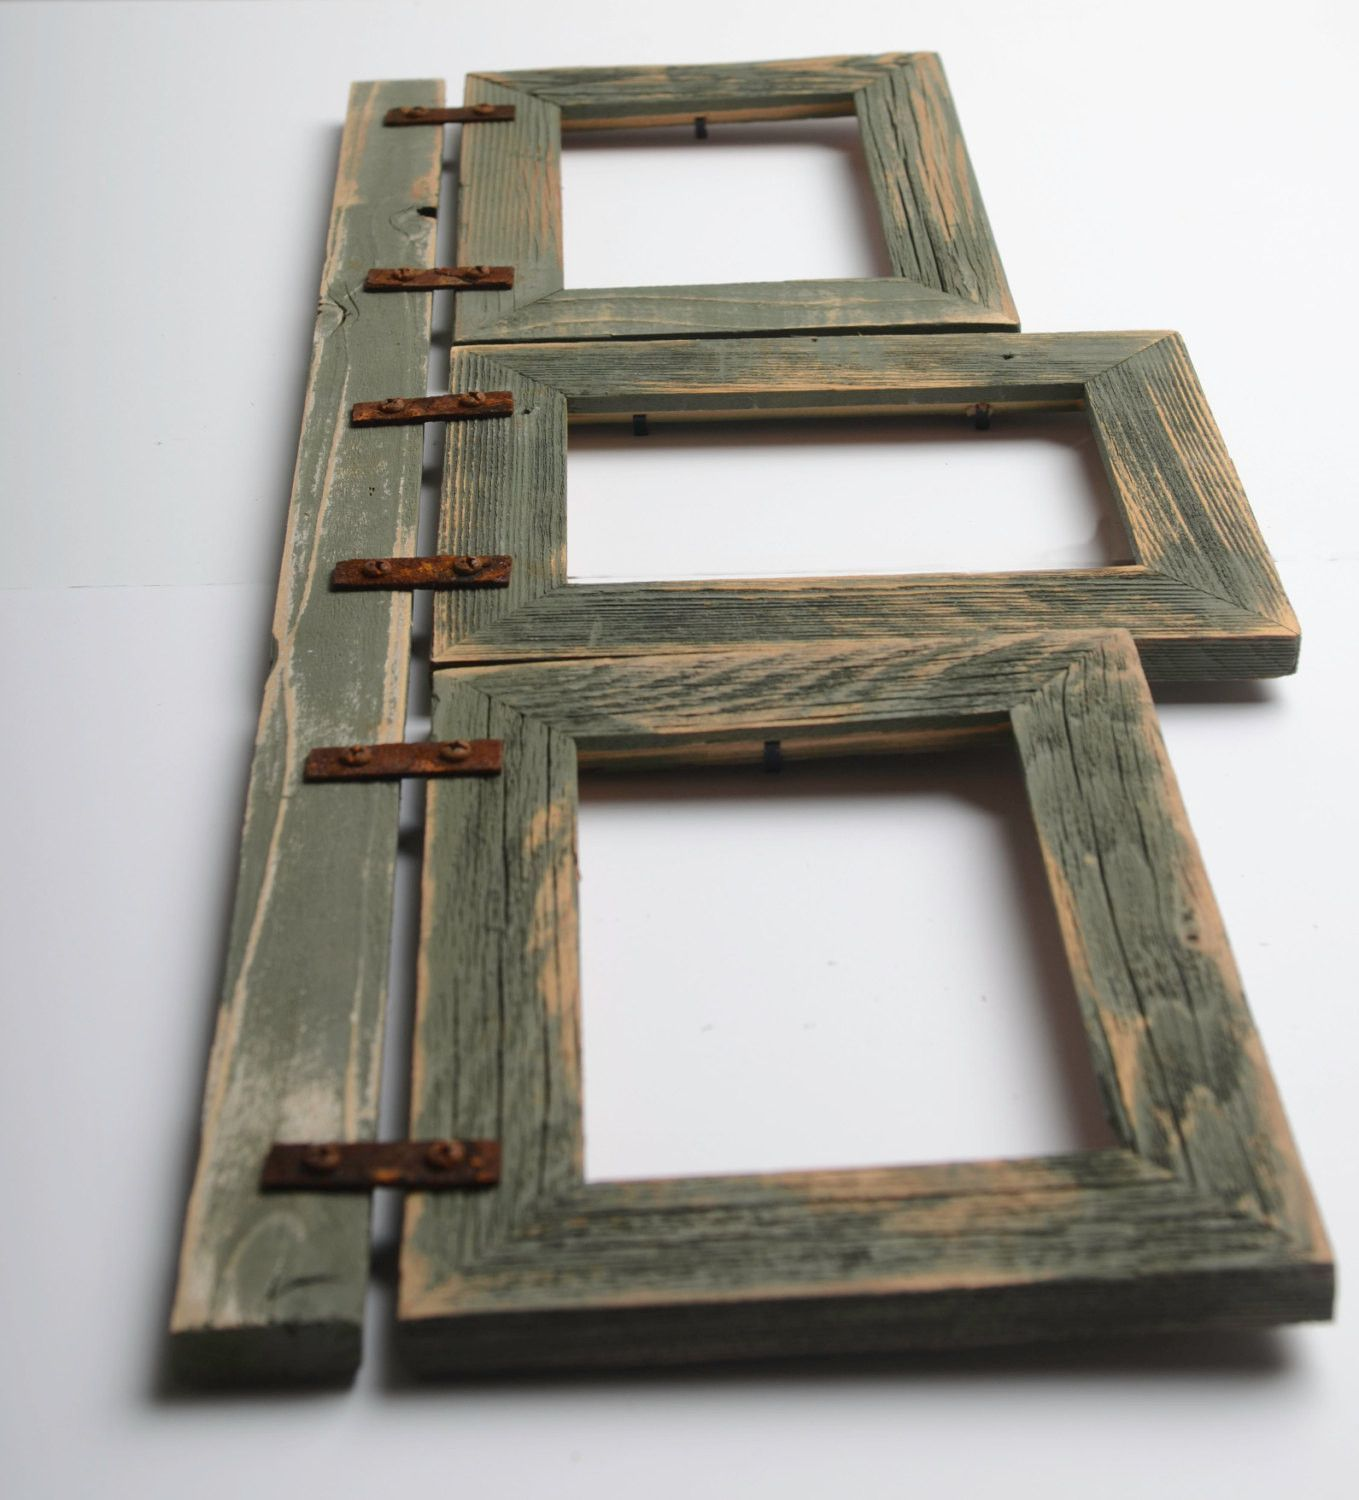 8x10 and 5x7 collage frame - 2 Barnwood Collage Sage Frame 3 5x7 Multi Opening Frame